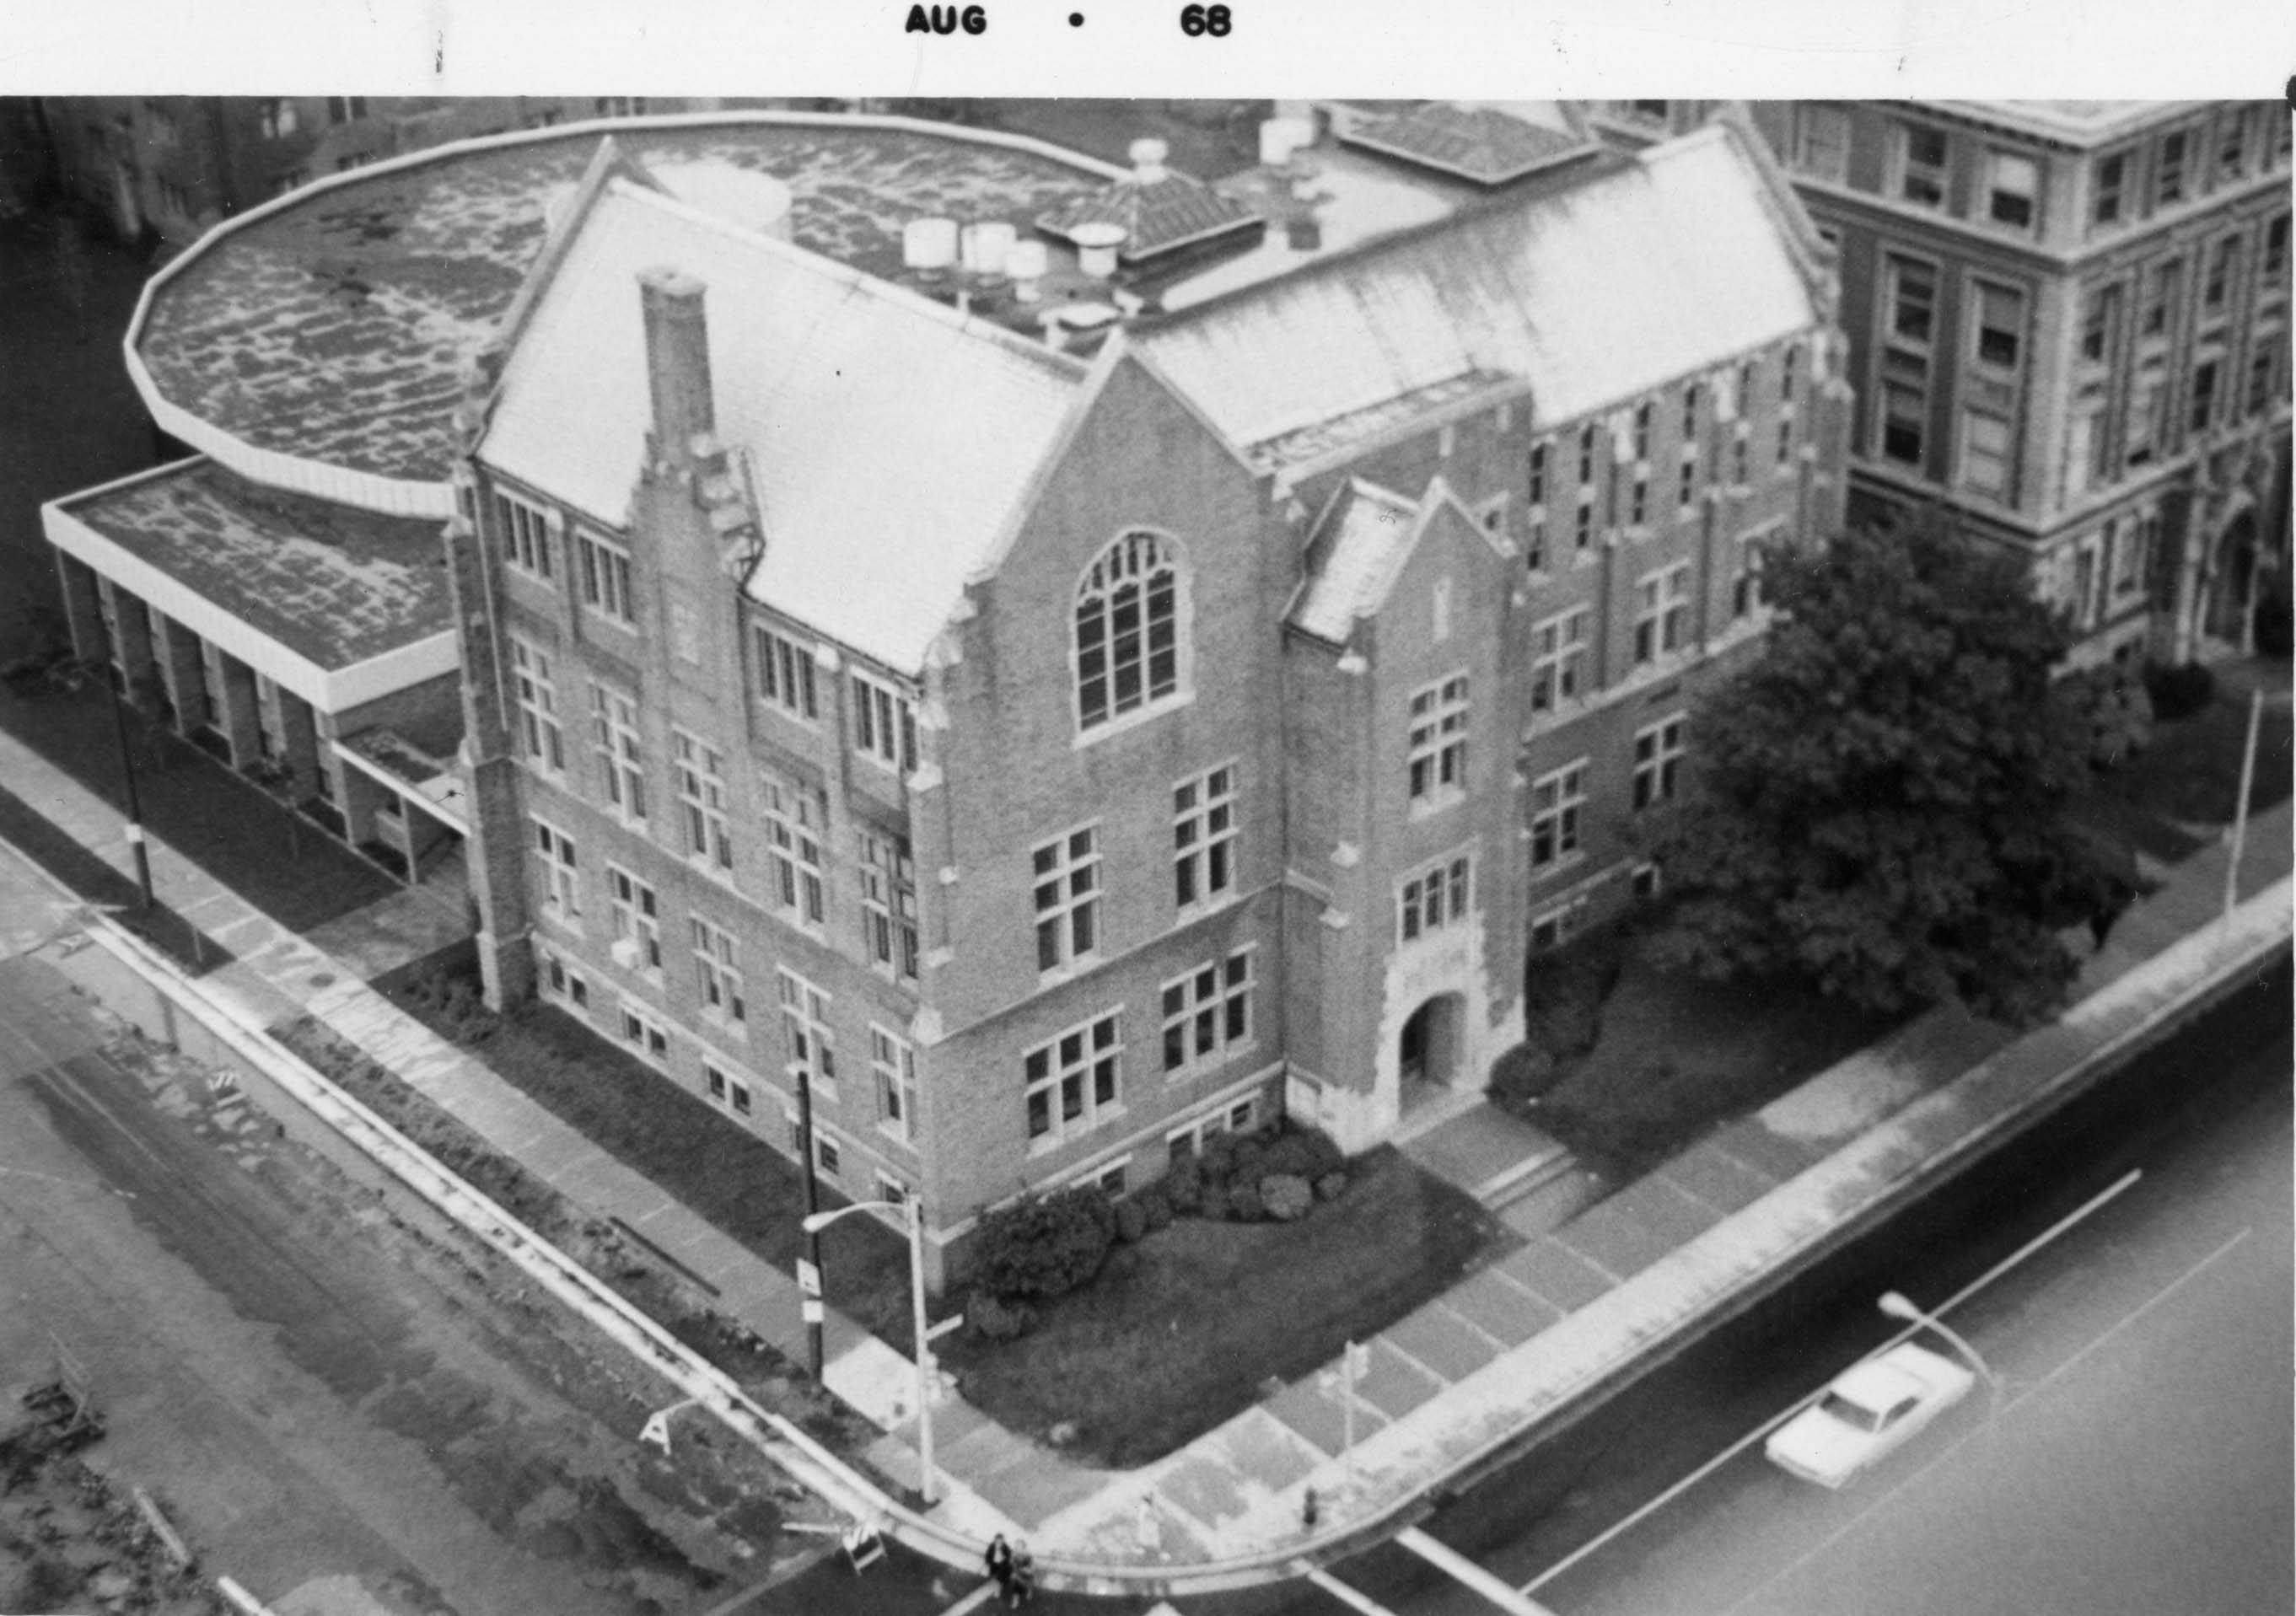 An aerial shot of Sensenbrenner Hall which features the newly-built Legal Research Center on the southern side of the building, 1968.